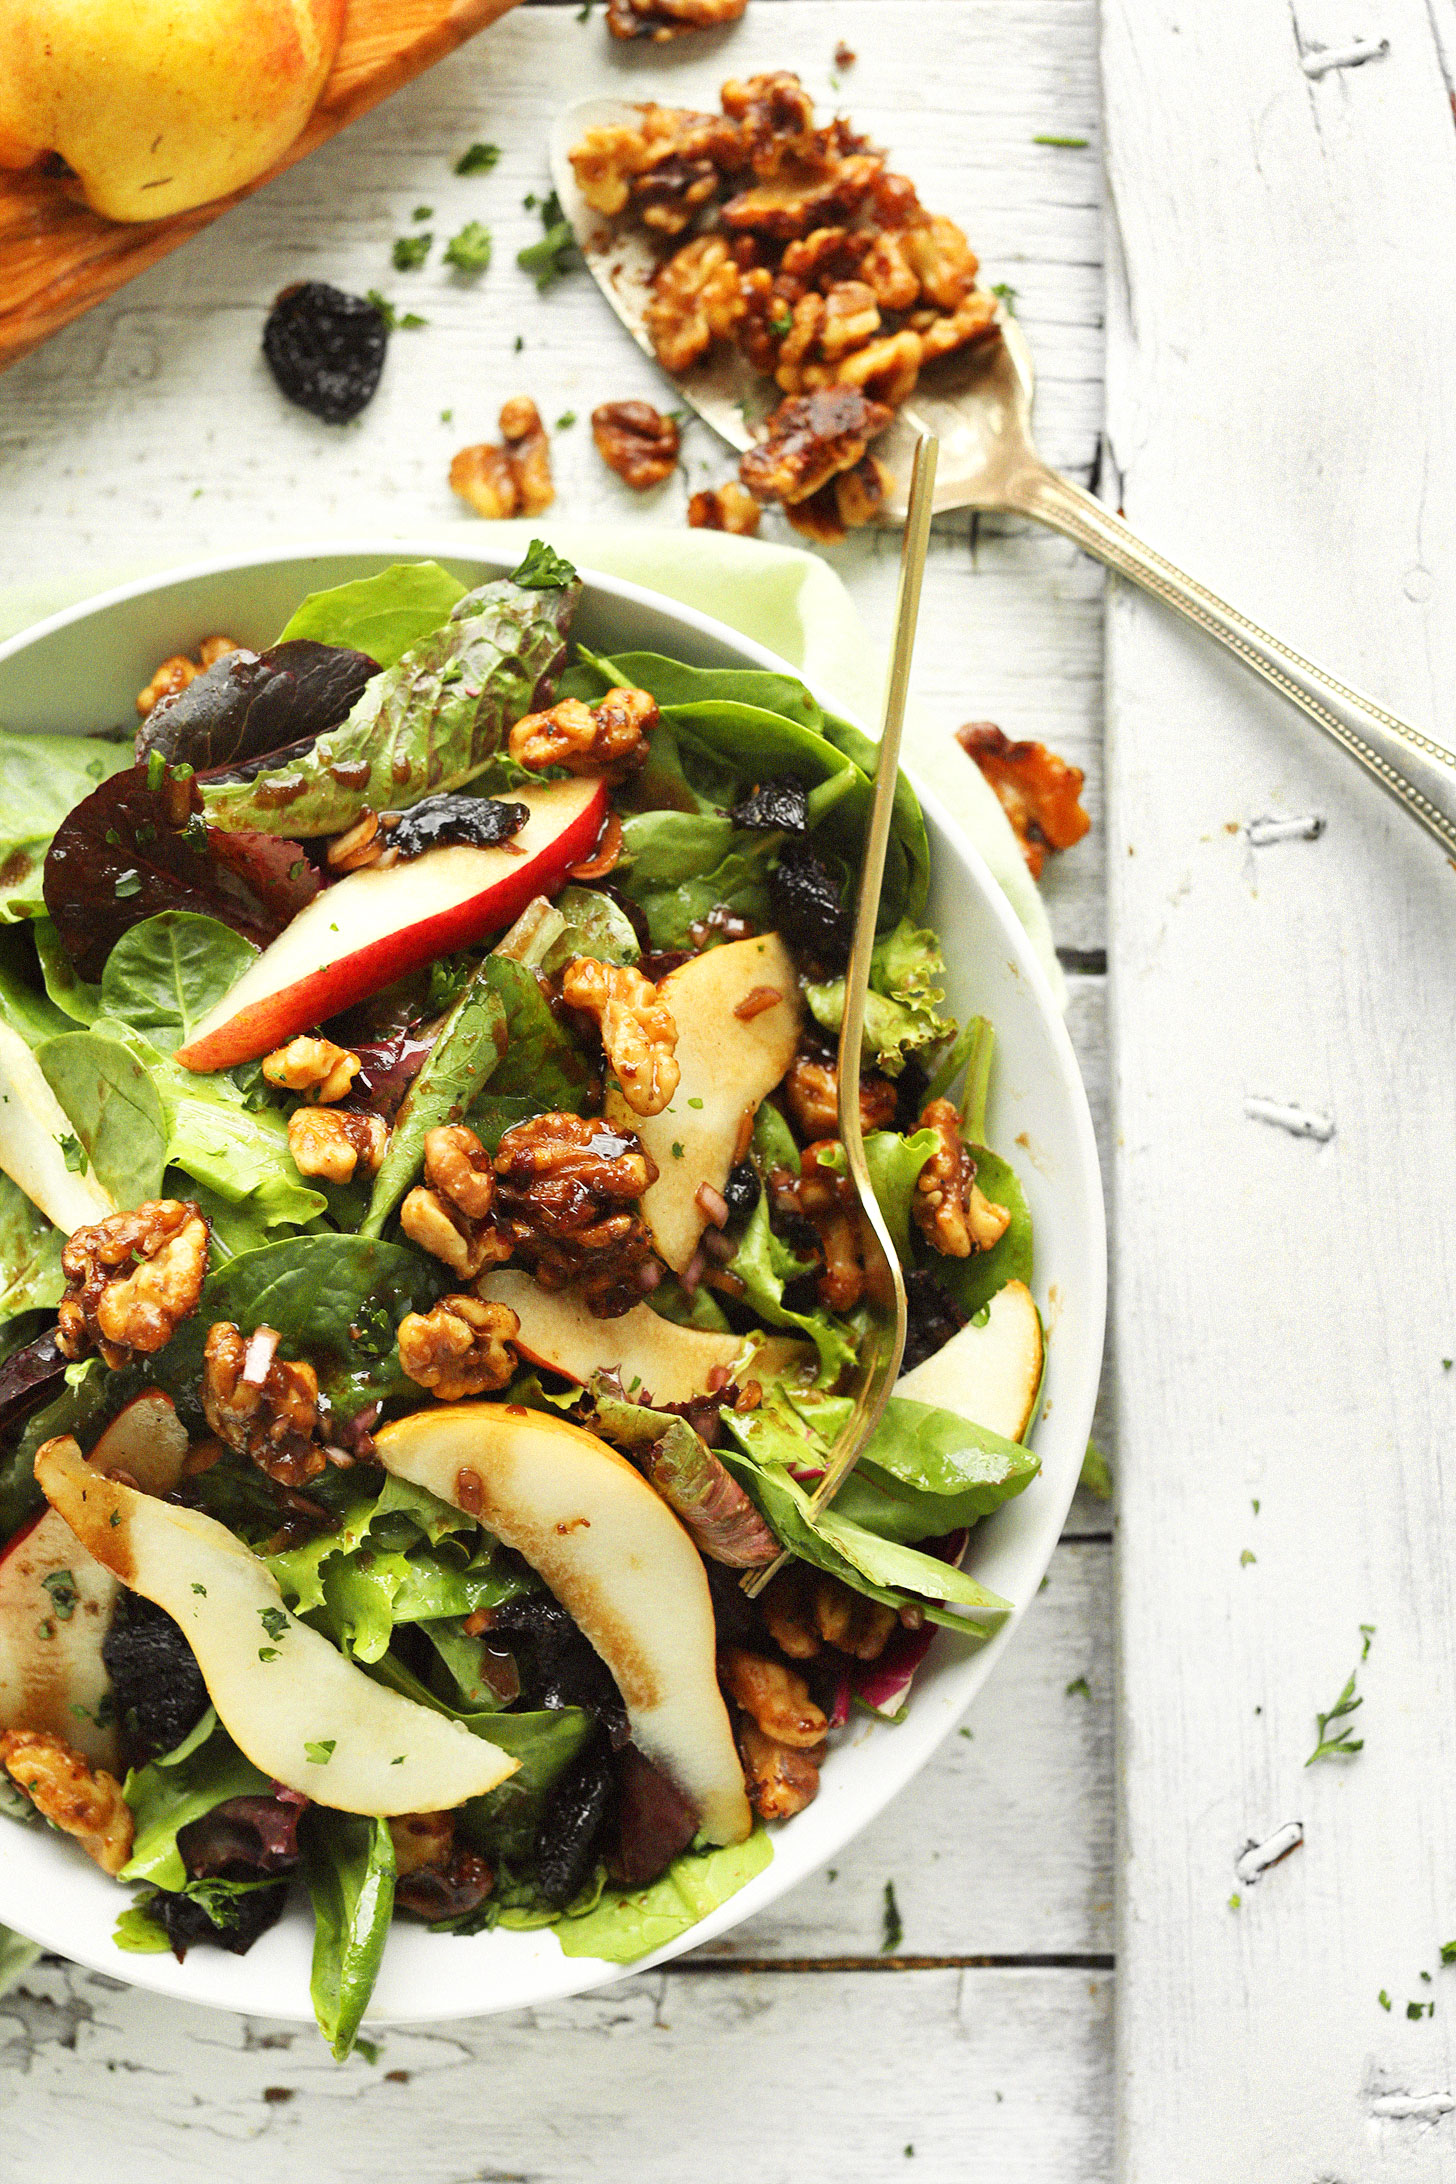 A bowl of our Easy Pear Salad with Dried Cherries and Candied Walnuts for an easy fall salad